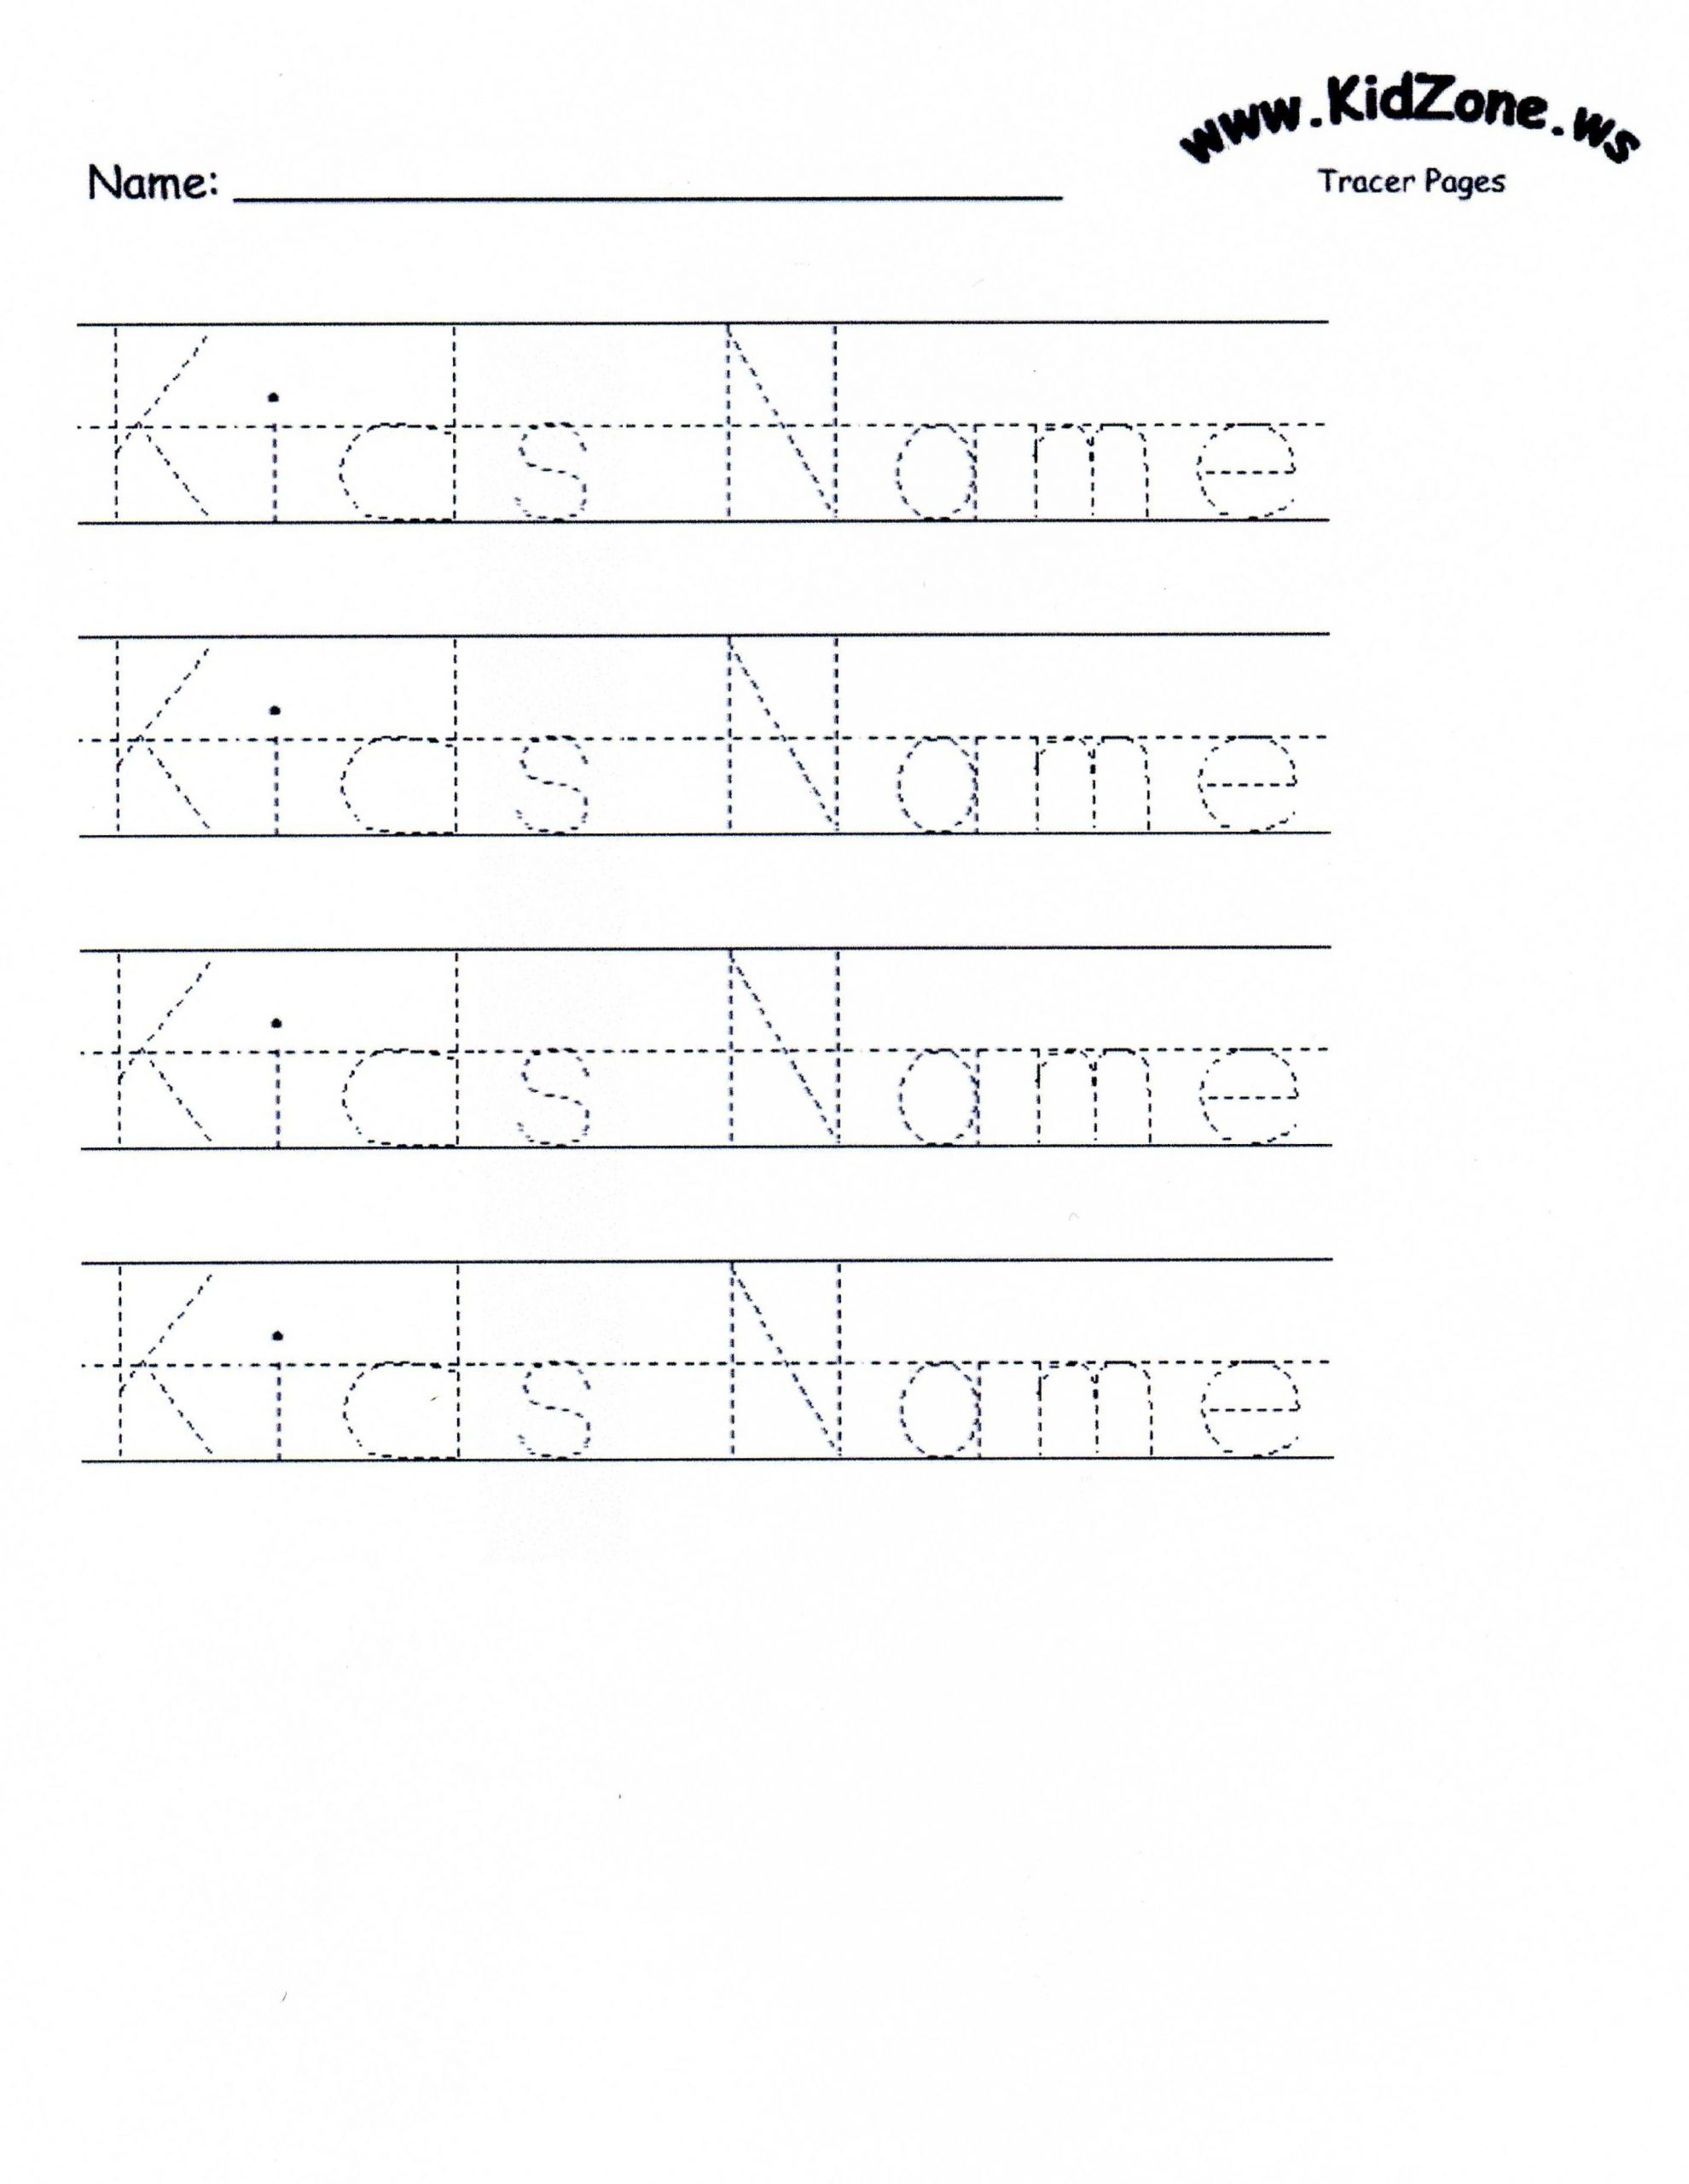 Custom Tracer Pages Name Tracing Worksheets Preschool